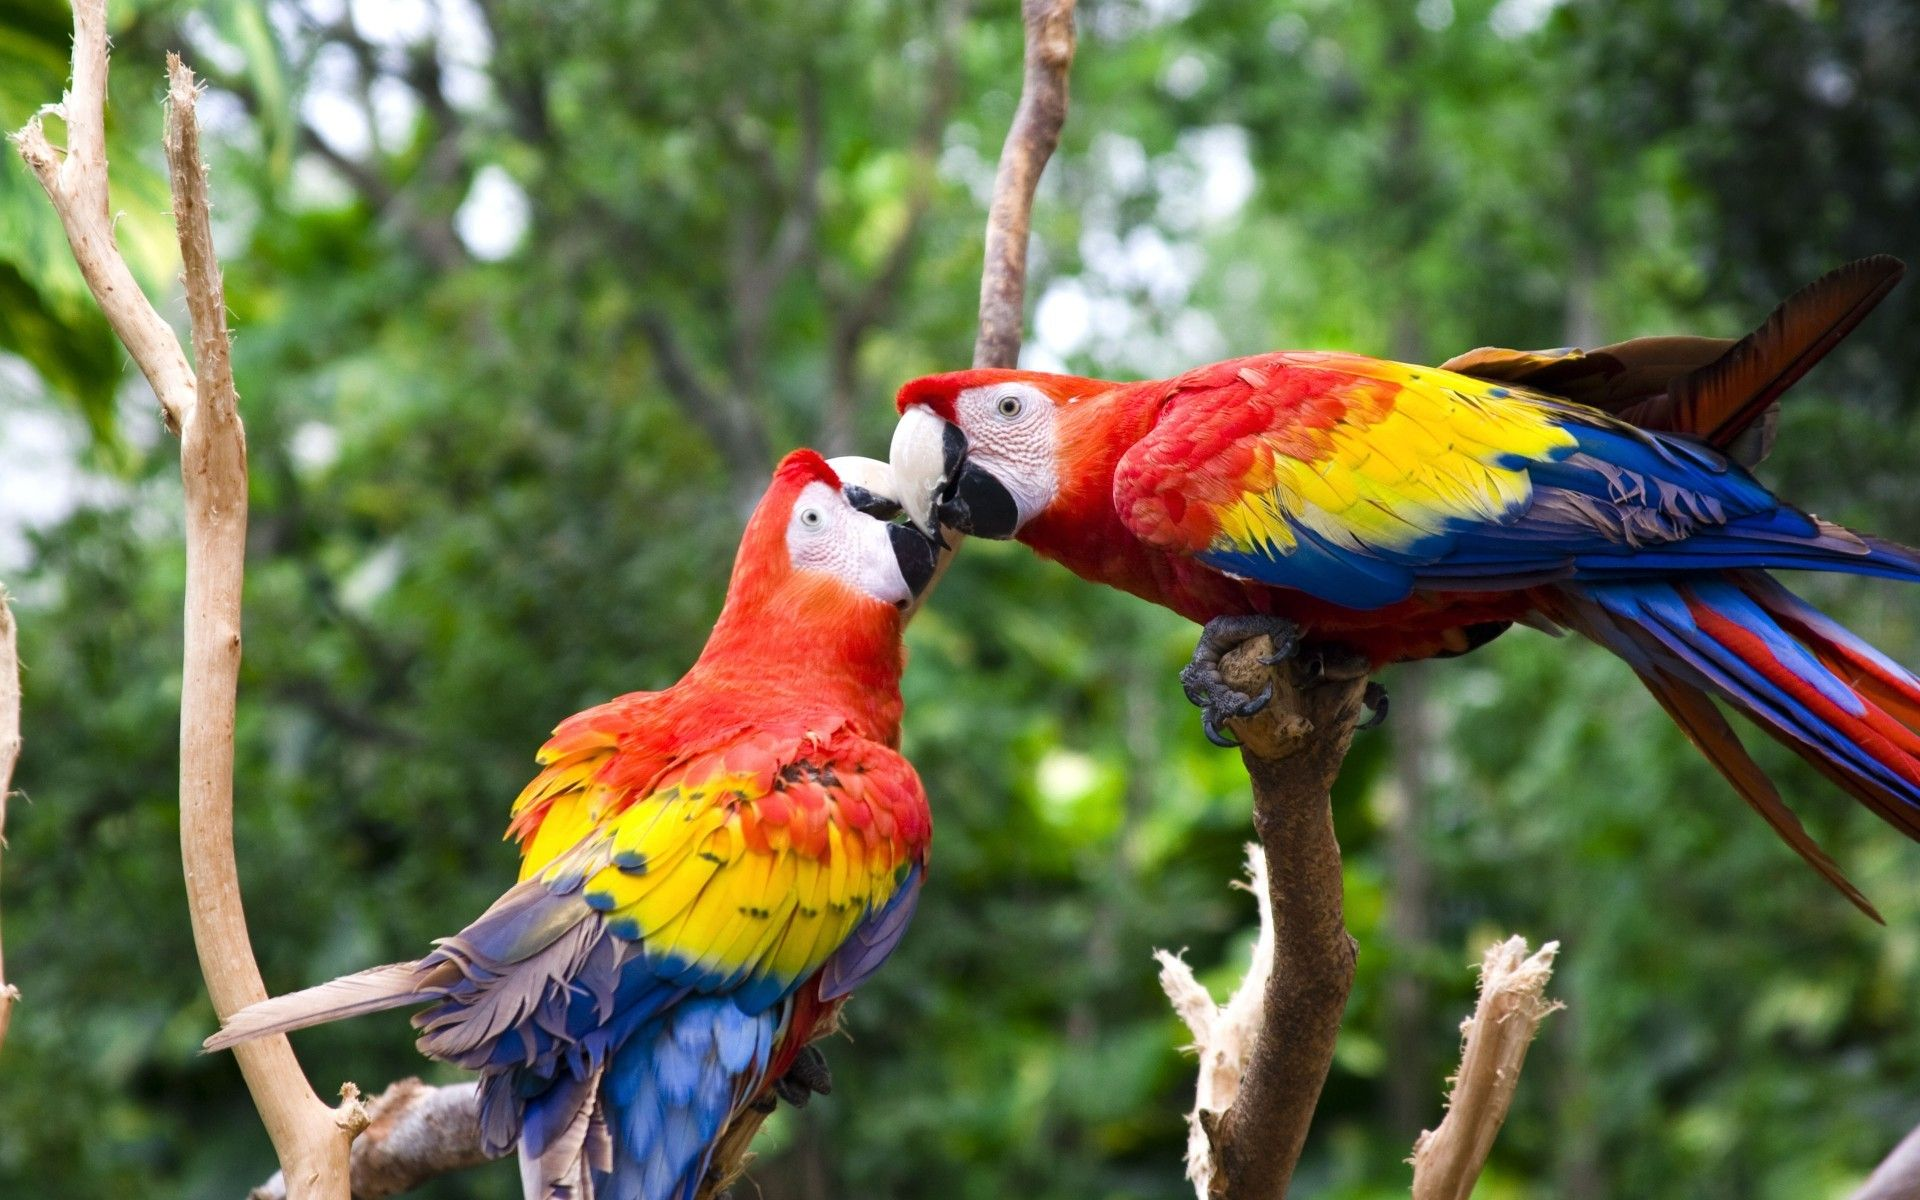 Cute Love Bird Colorful Parrot Hd Wallpapers Birds Wallpapers